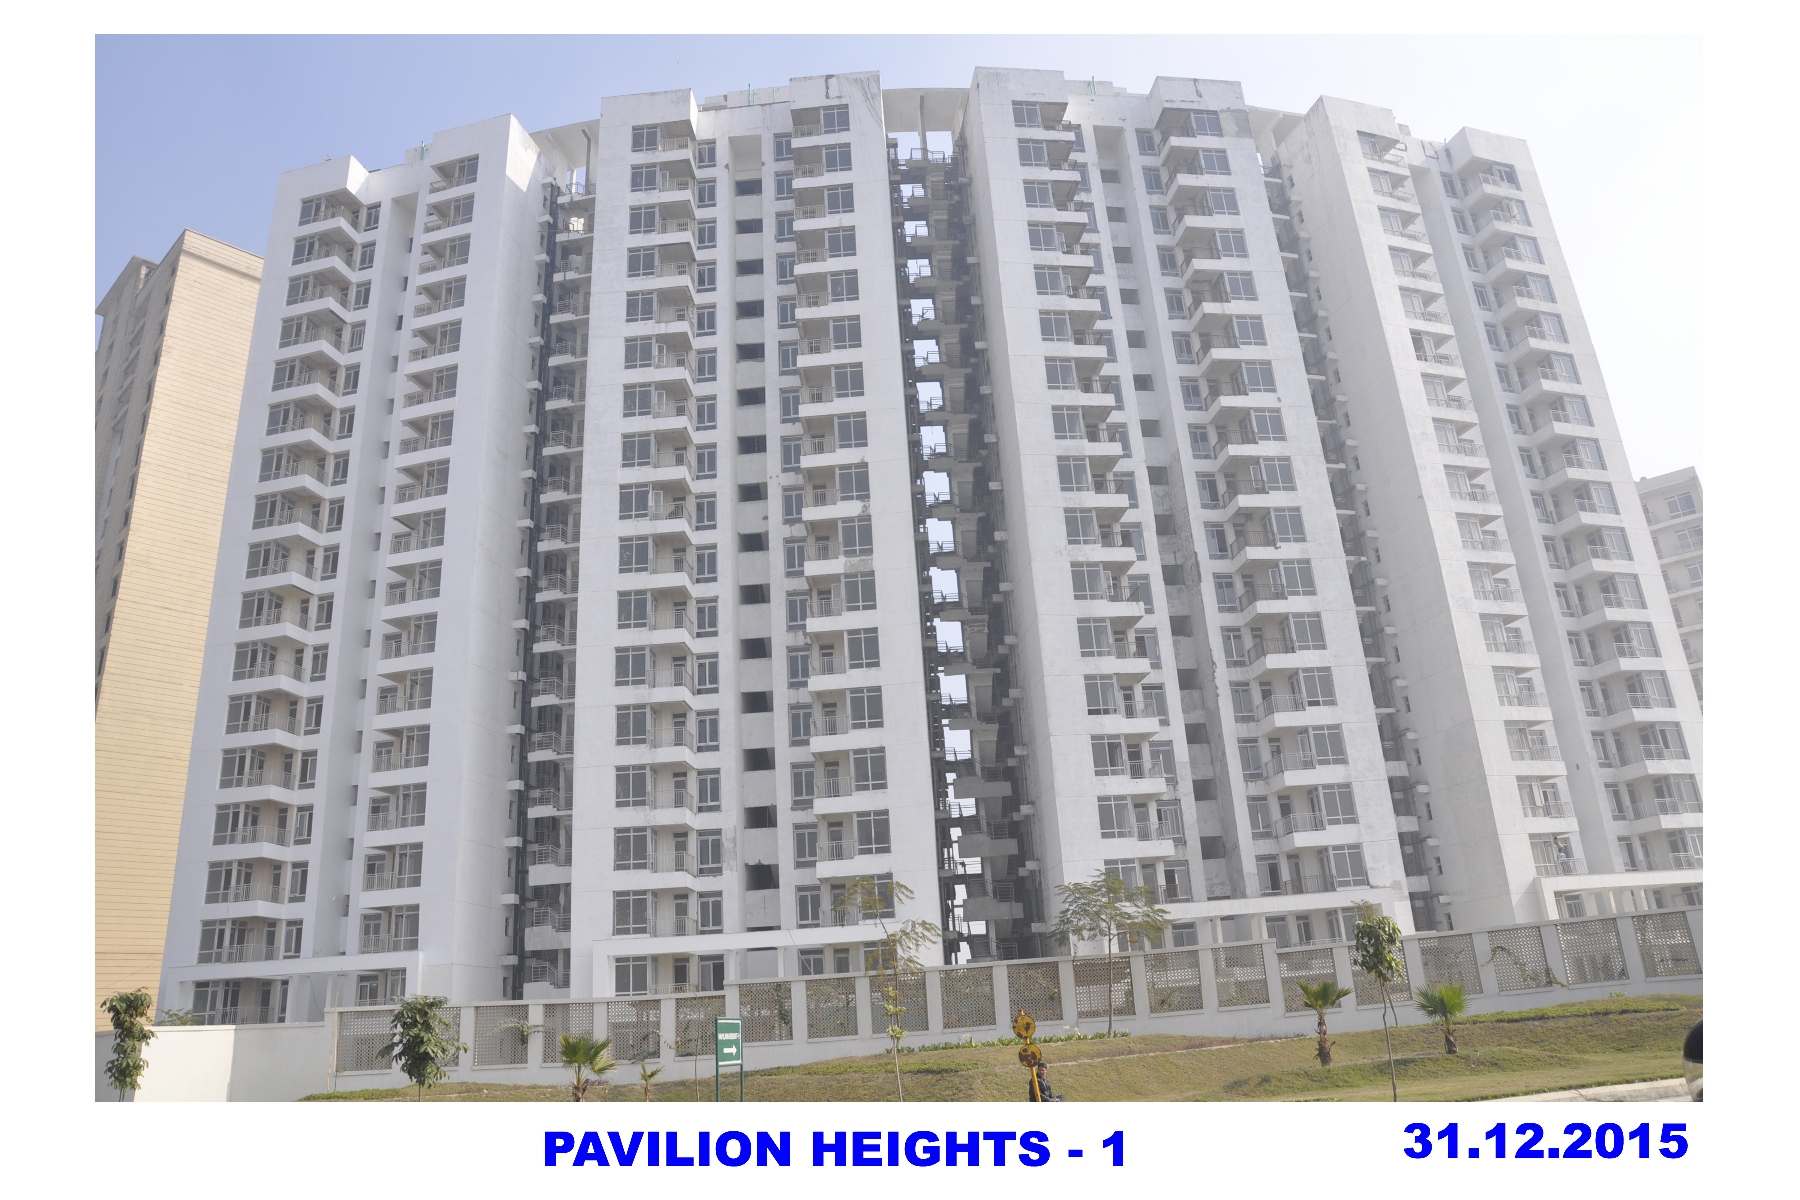 Pavilion Height Tower - 1